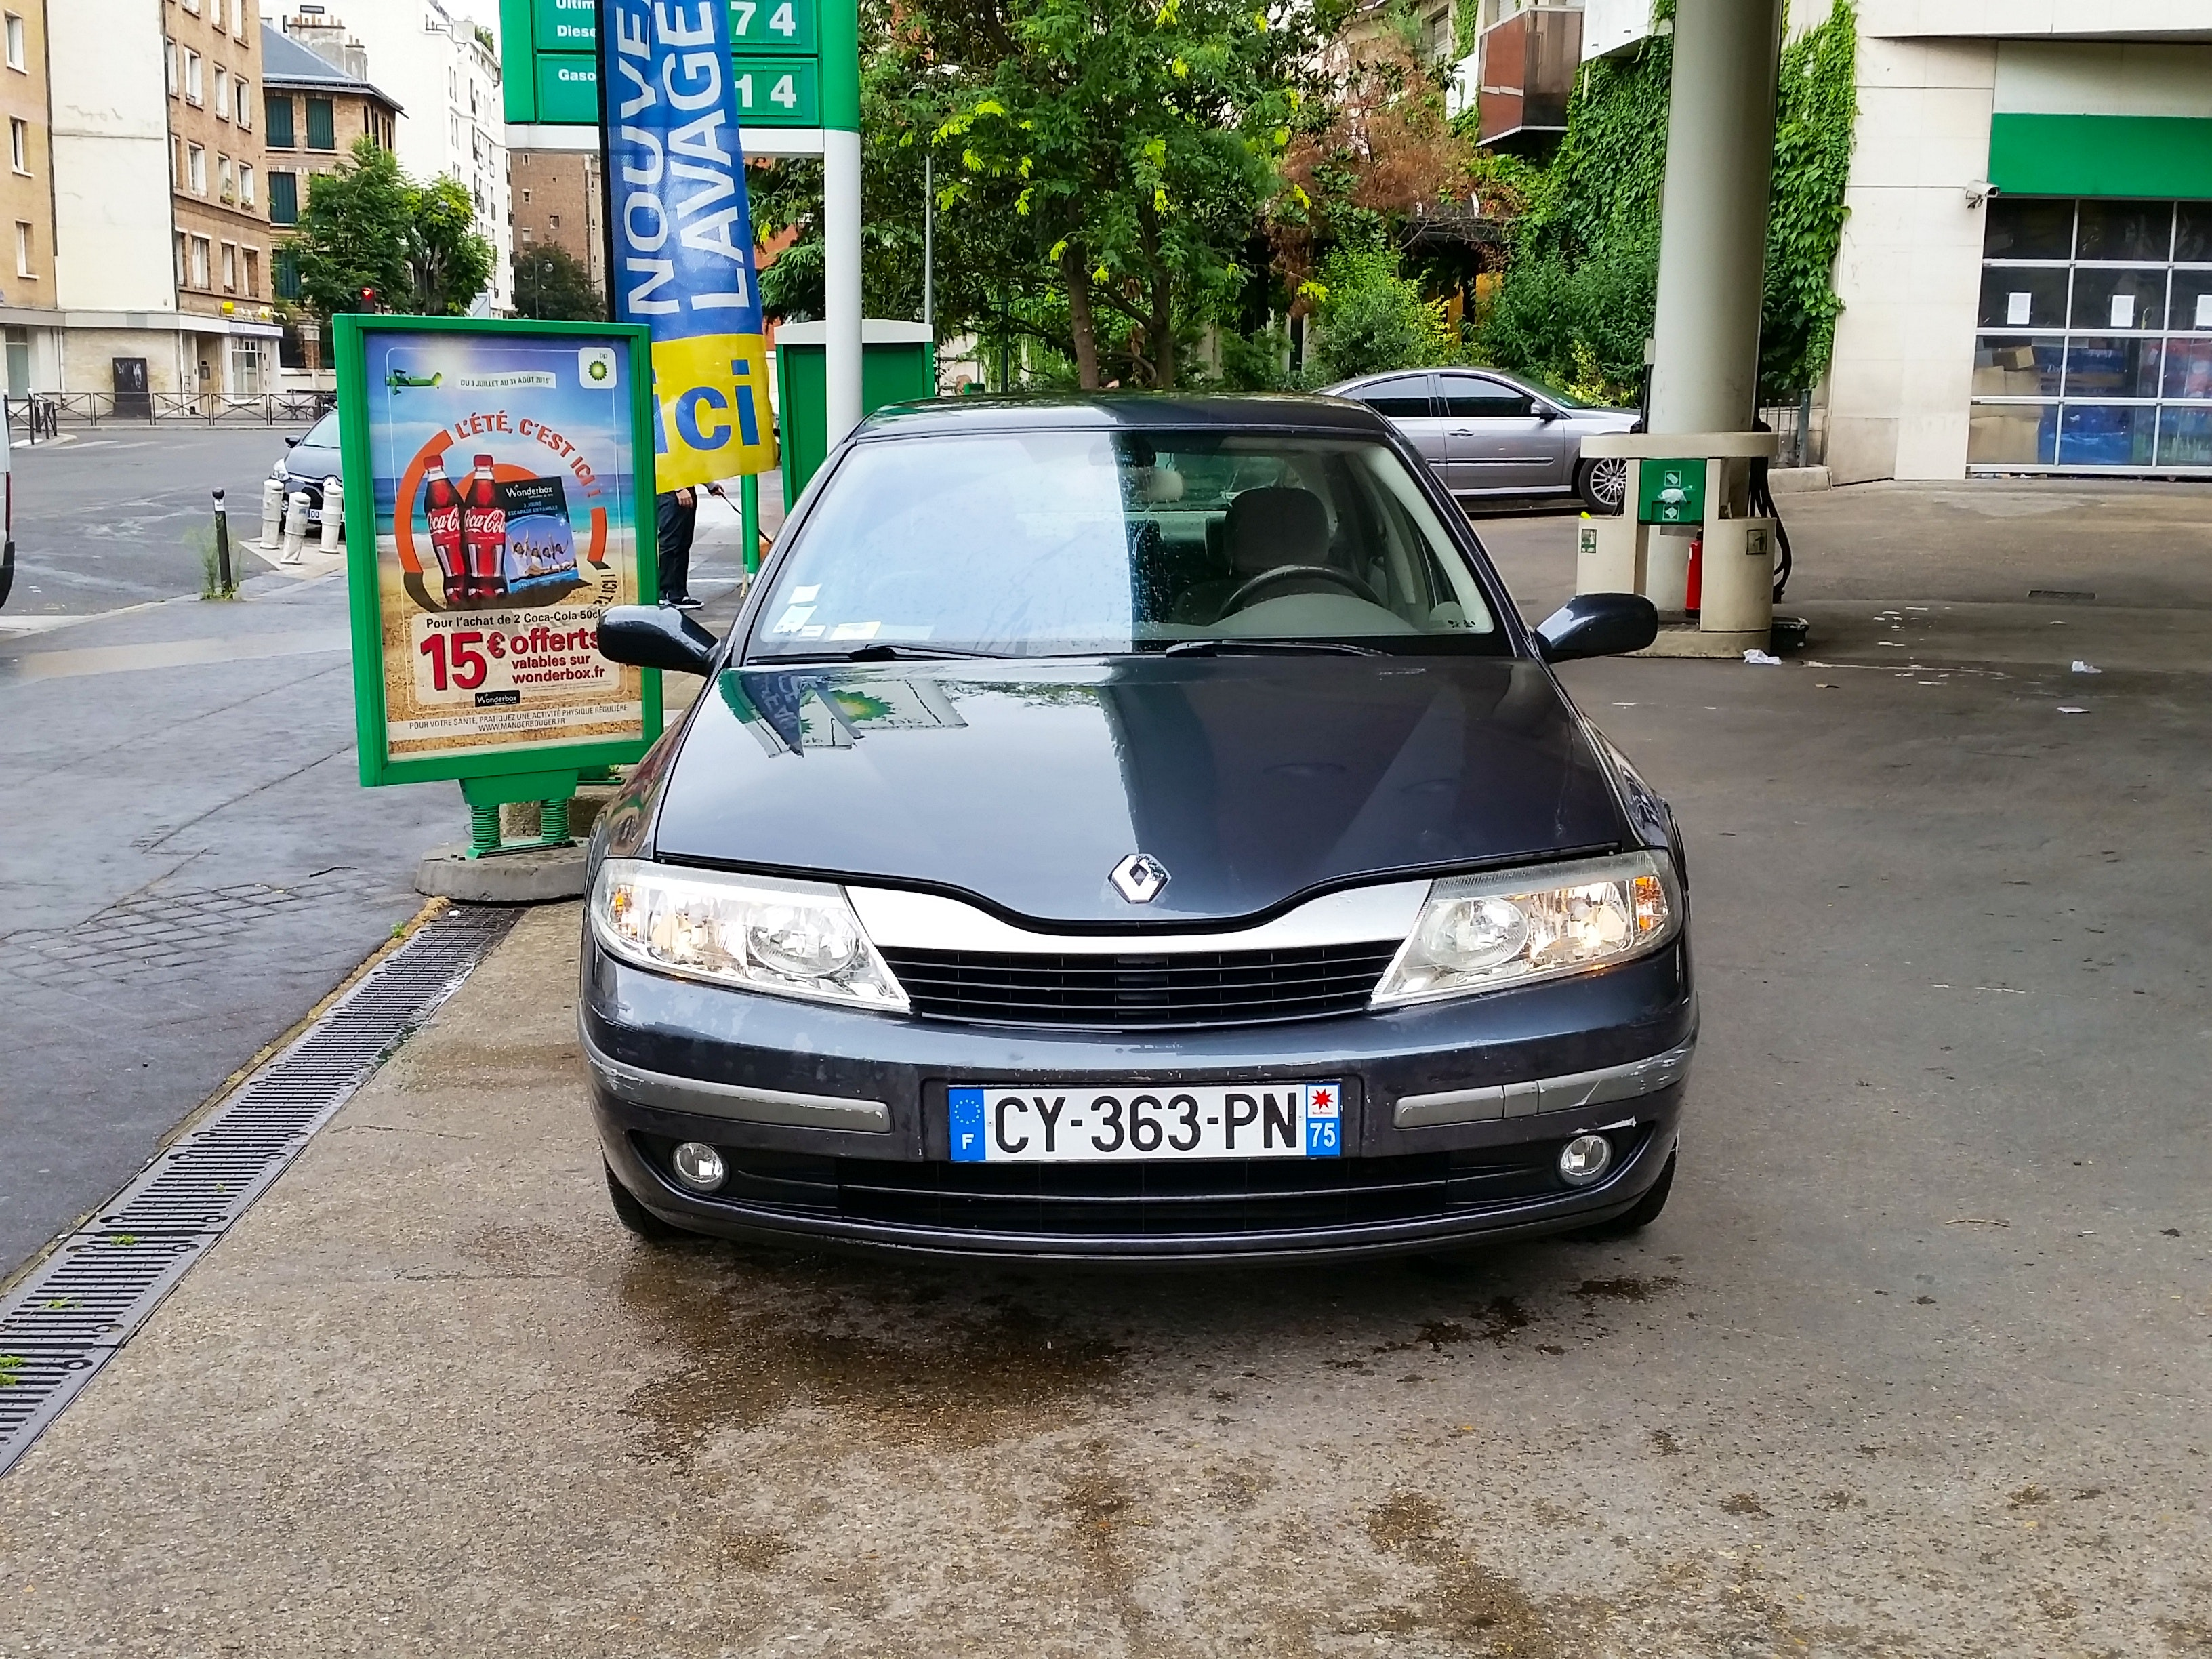 Renault  Laguna II automatique, 2004, Essence, automatique - Berline Paris (75)